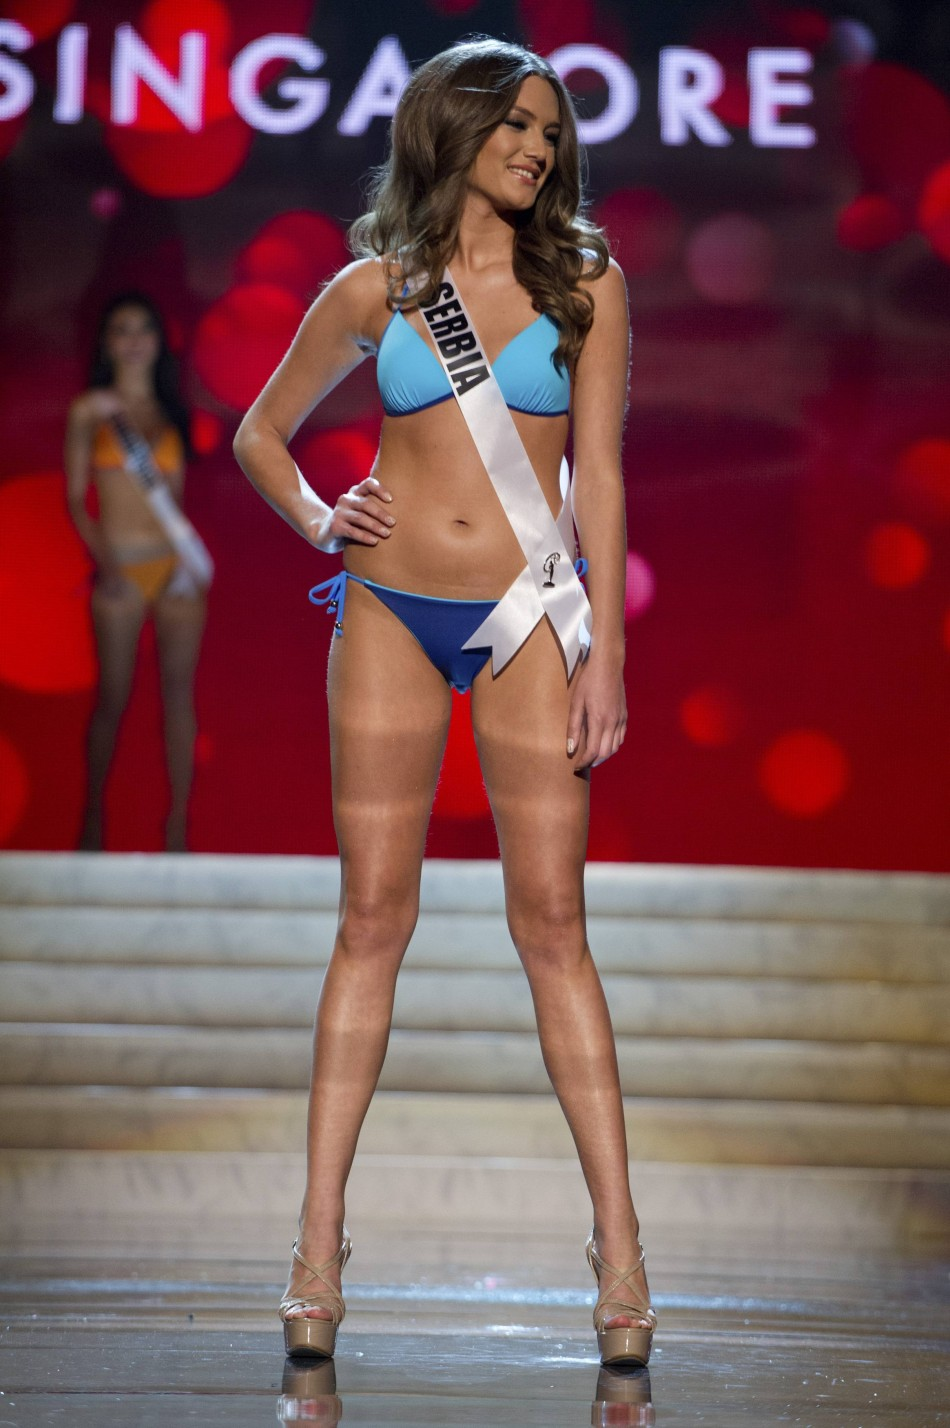 Miss Serbia Branislava Mandic at the Swimsuit Competition of the 2012 Miss Universe Presentation Show at PH Live in Las Vegas